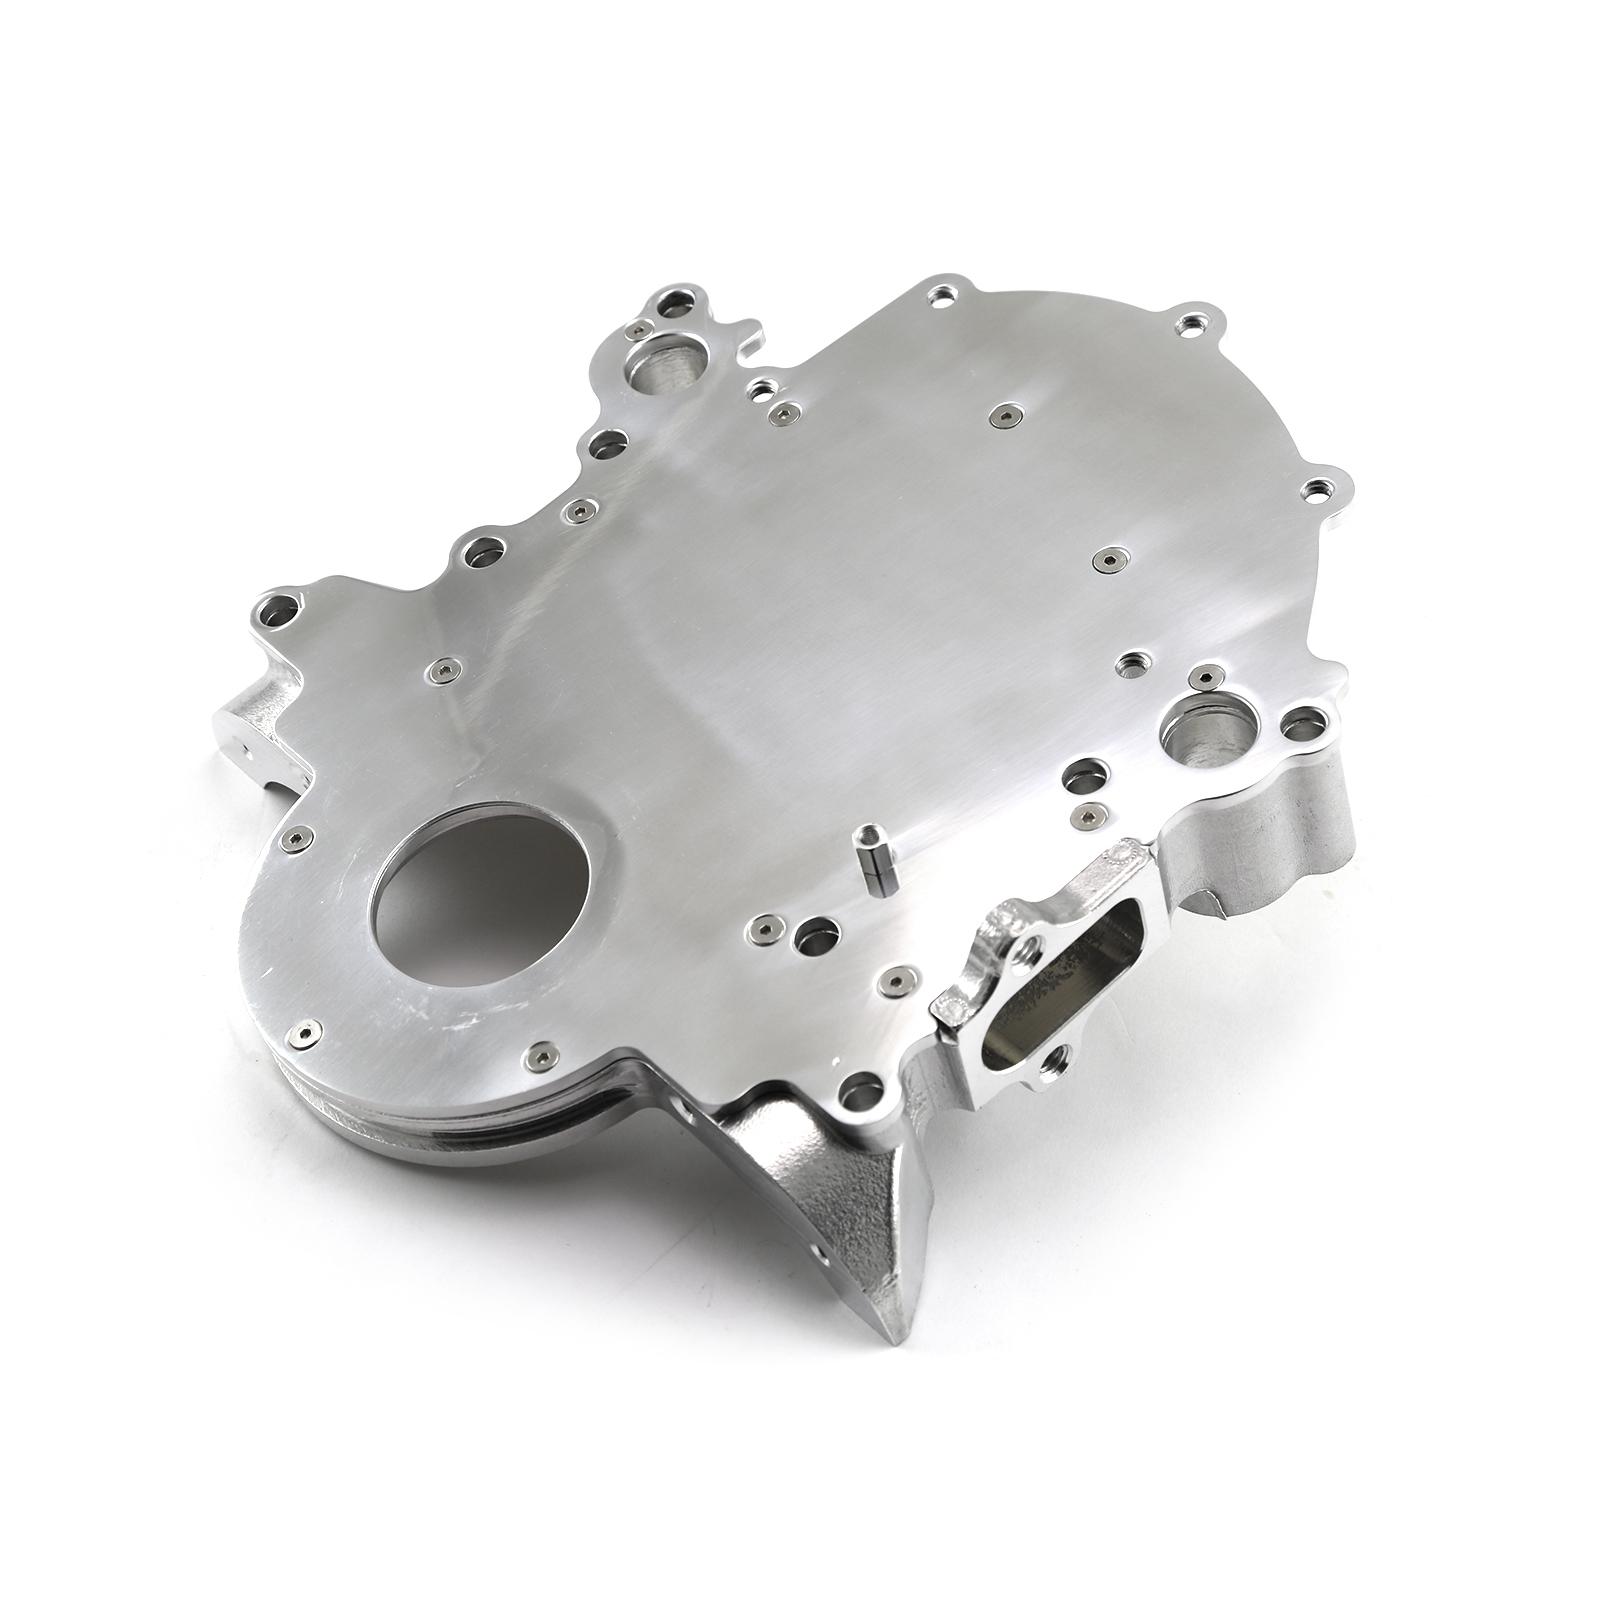 Ford Timing Chain Cover : Ford sb windsor l pc billet